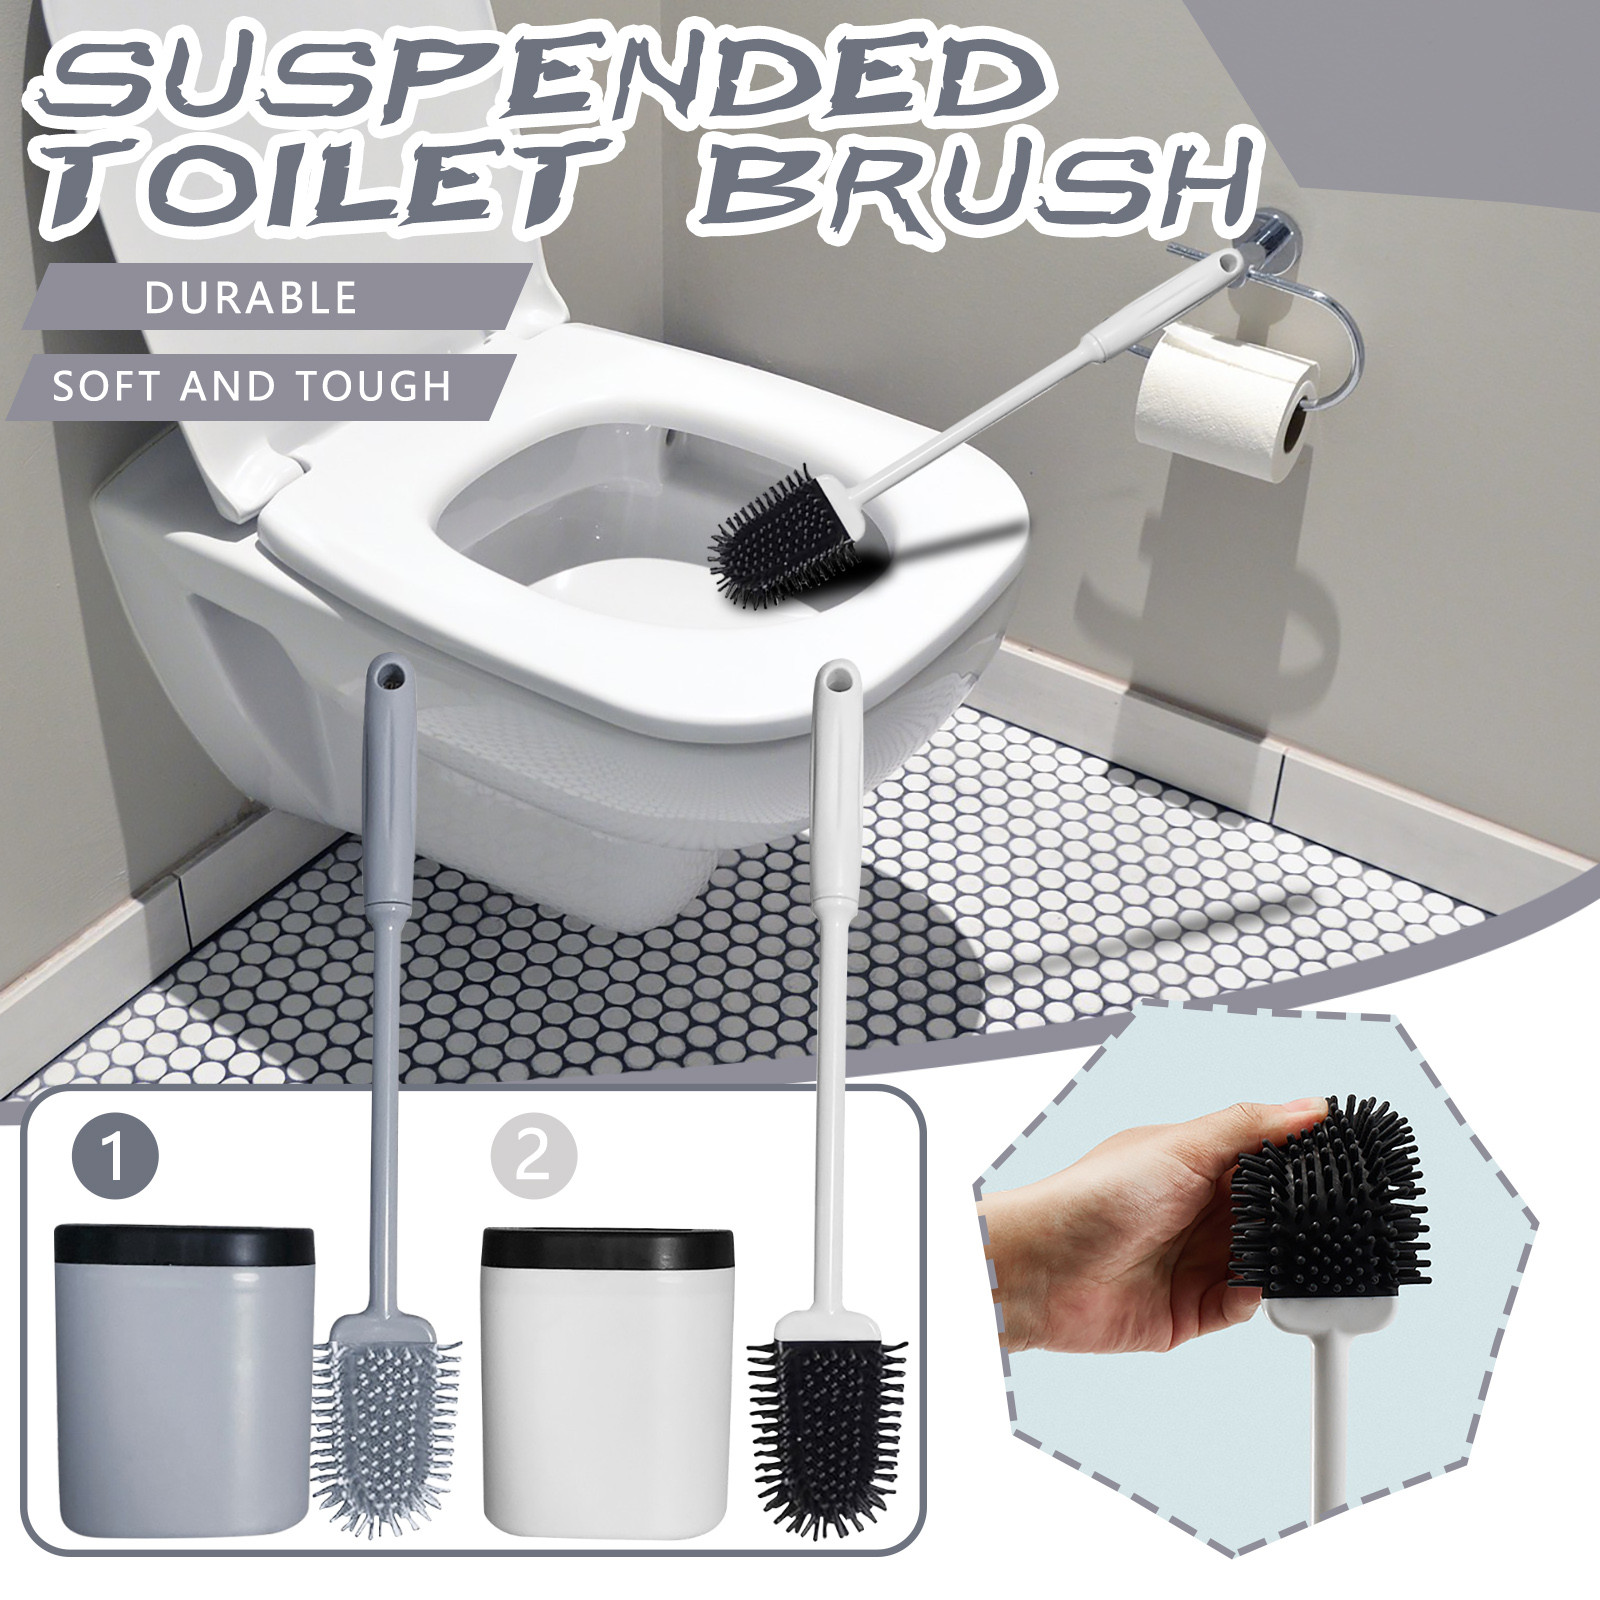 Silicone Bristles Toilet Brush and Holder for Bathroom Storage and Organization Compact Wall Hang Cleaning Kit WC Accessories